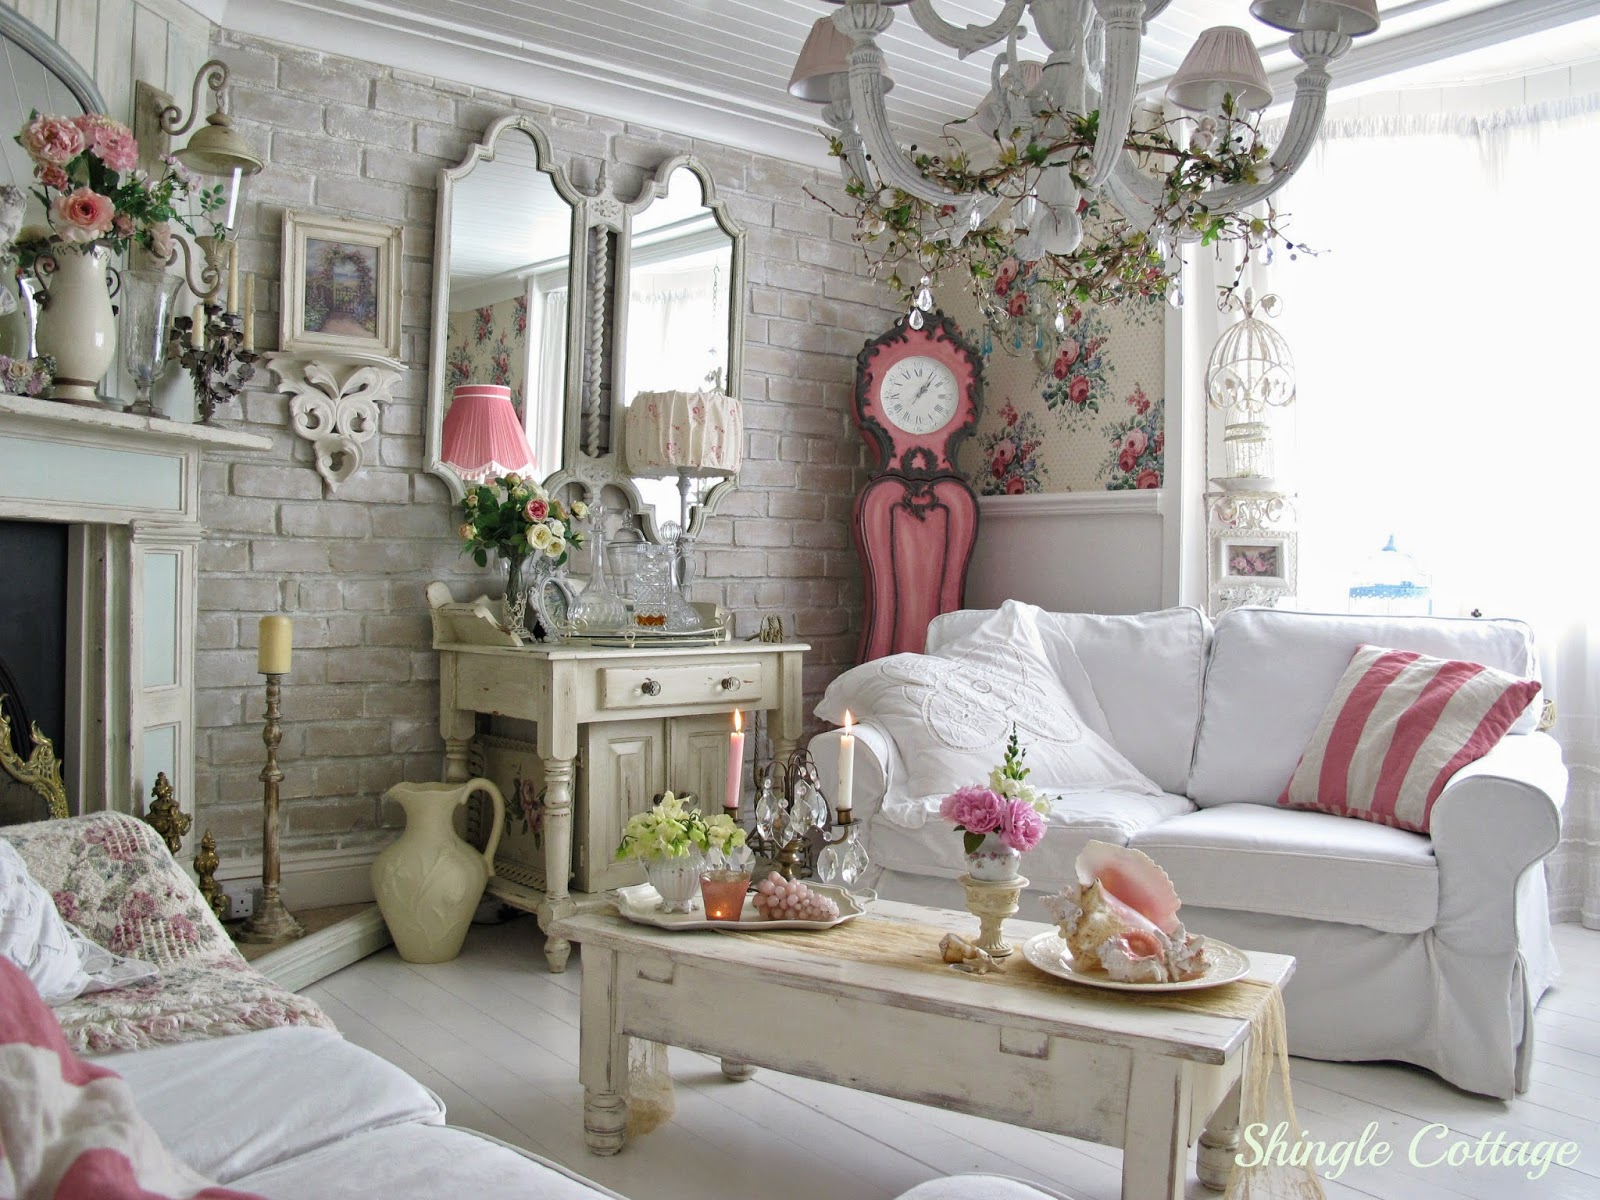 Salon Shabby Chic 1000 43 Images About Shabby Chic On Pinterest Pamela